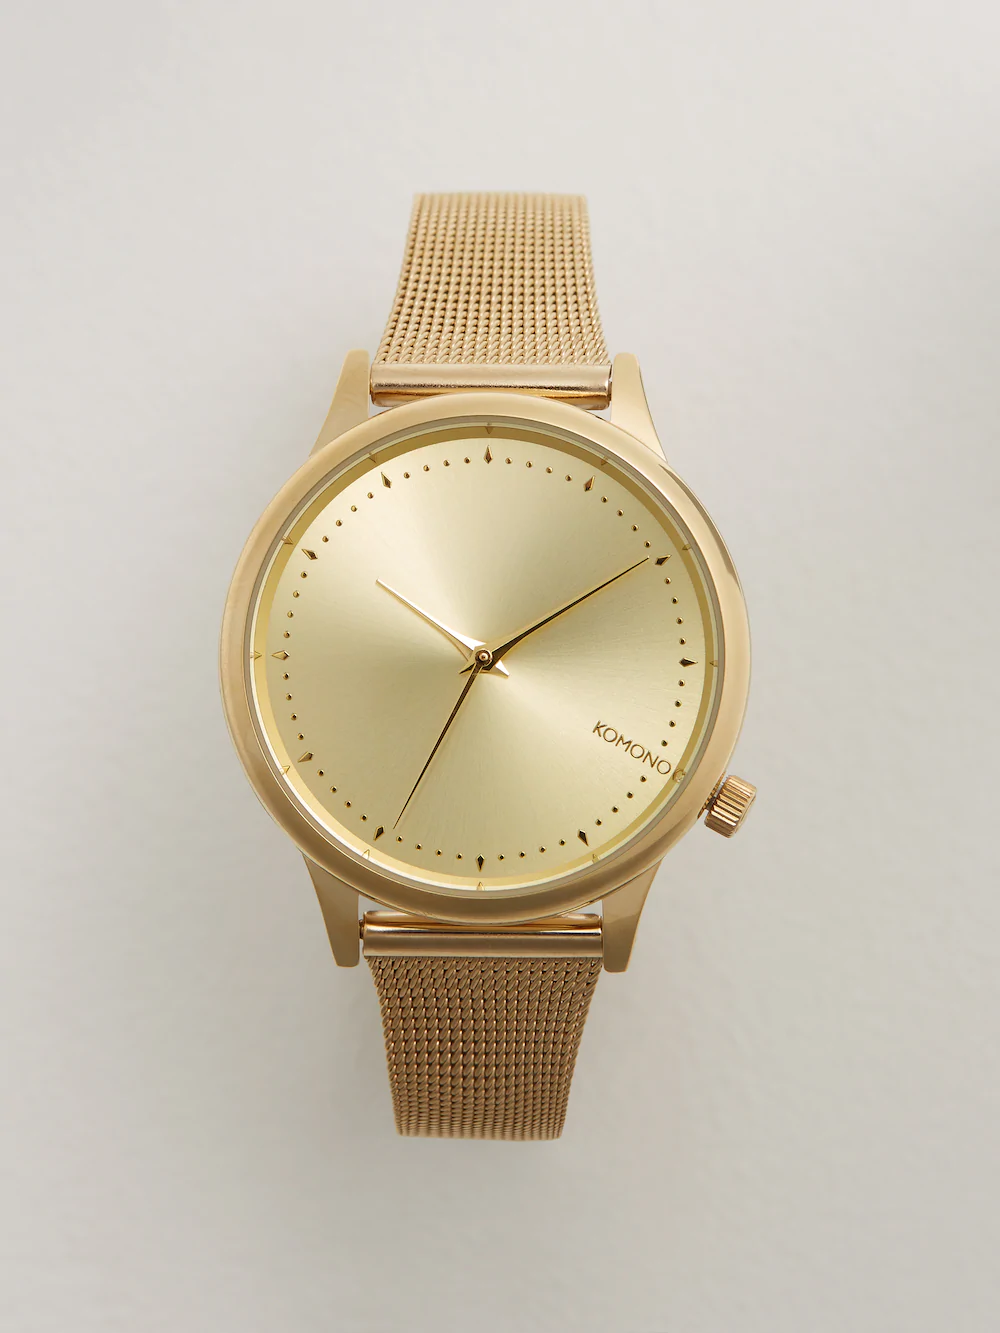 Frank + Oak Komono Estelle Royale Watch In Gold Metal